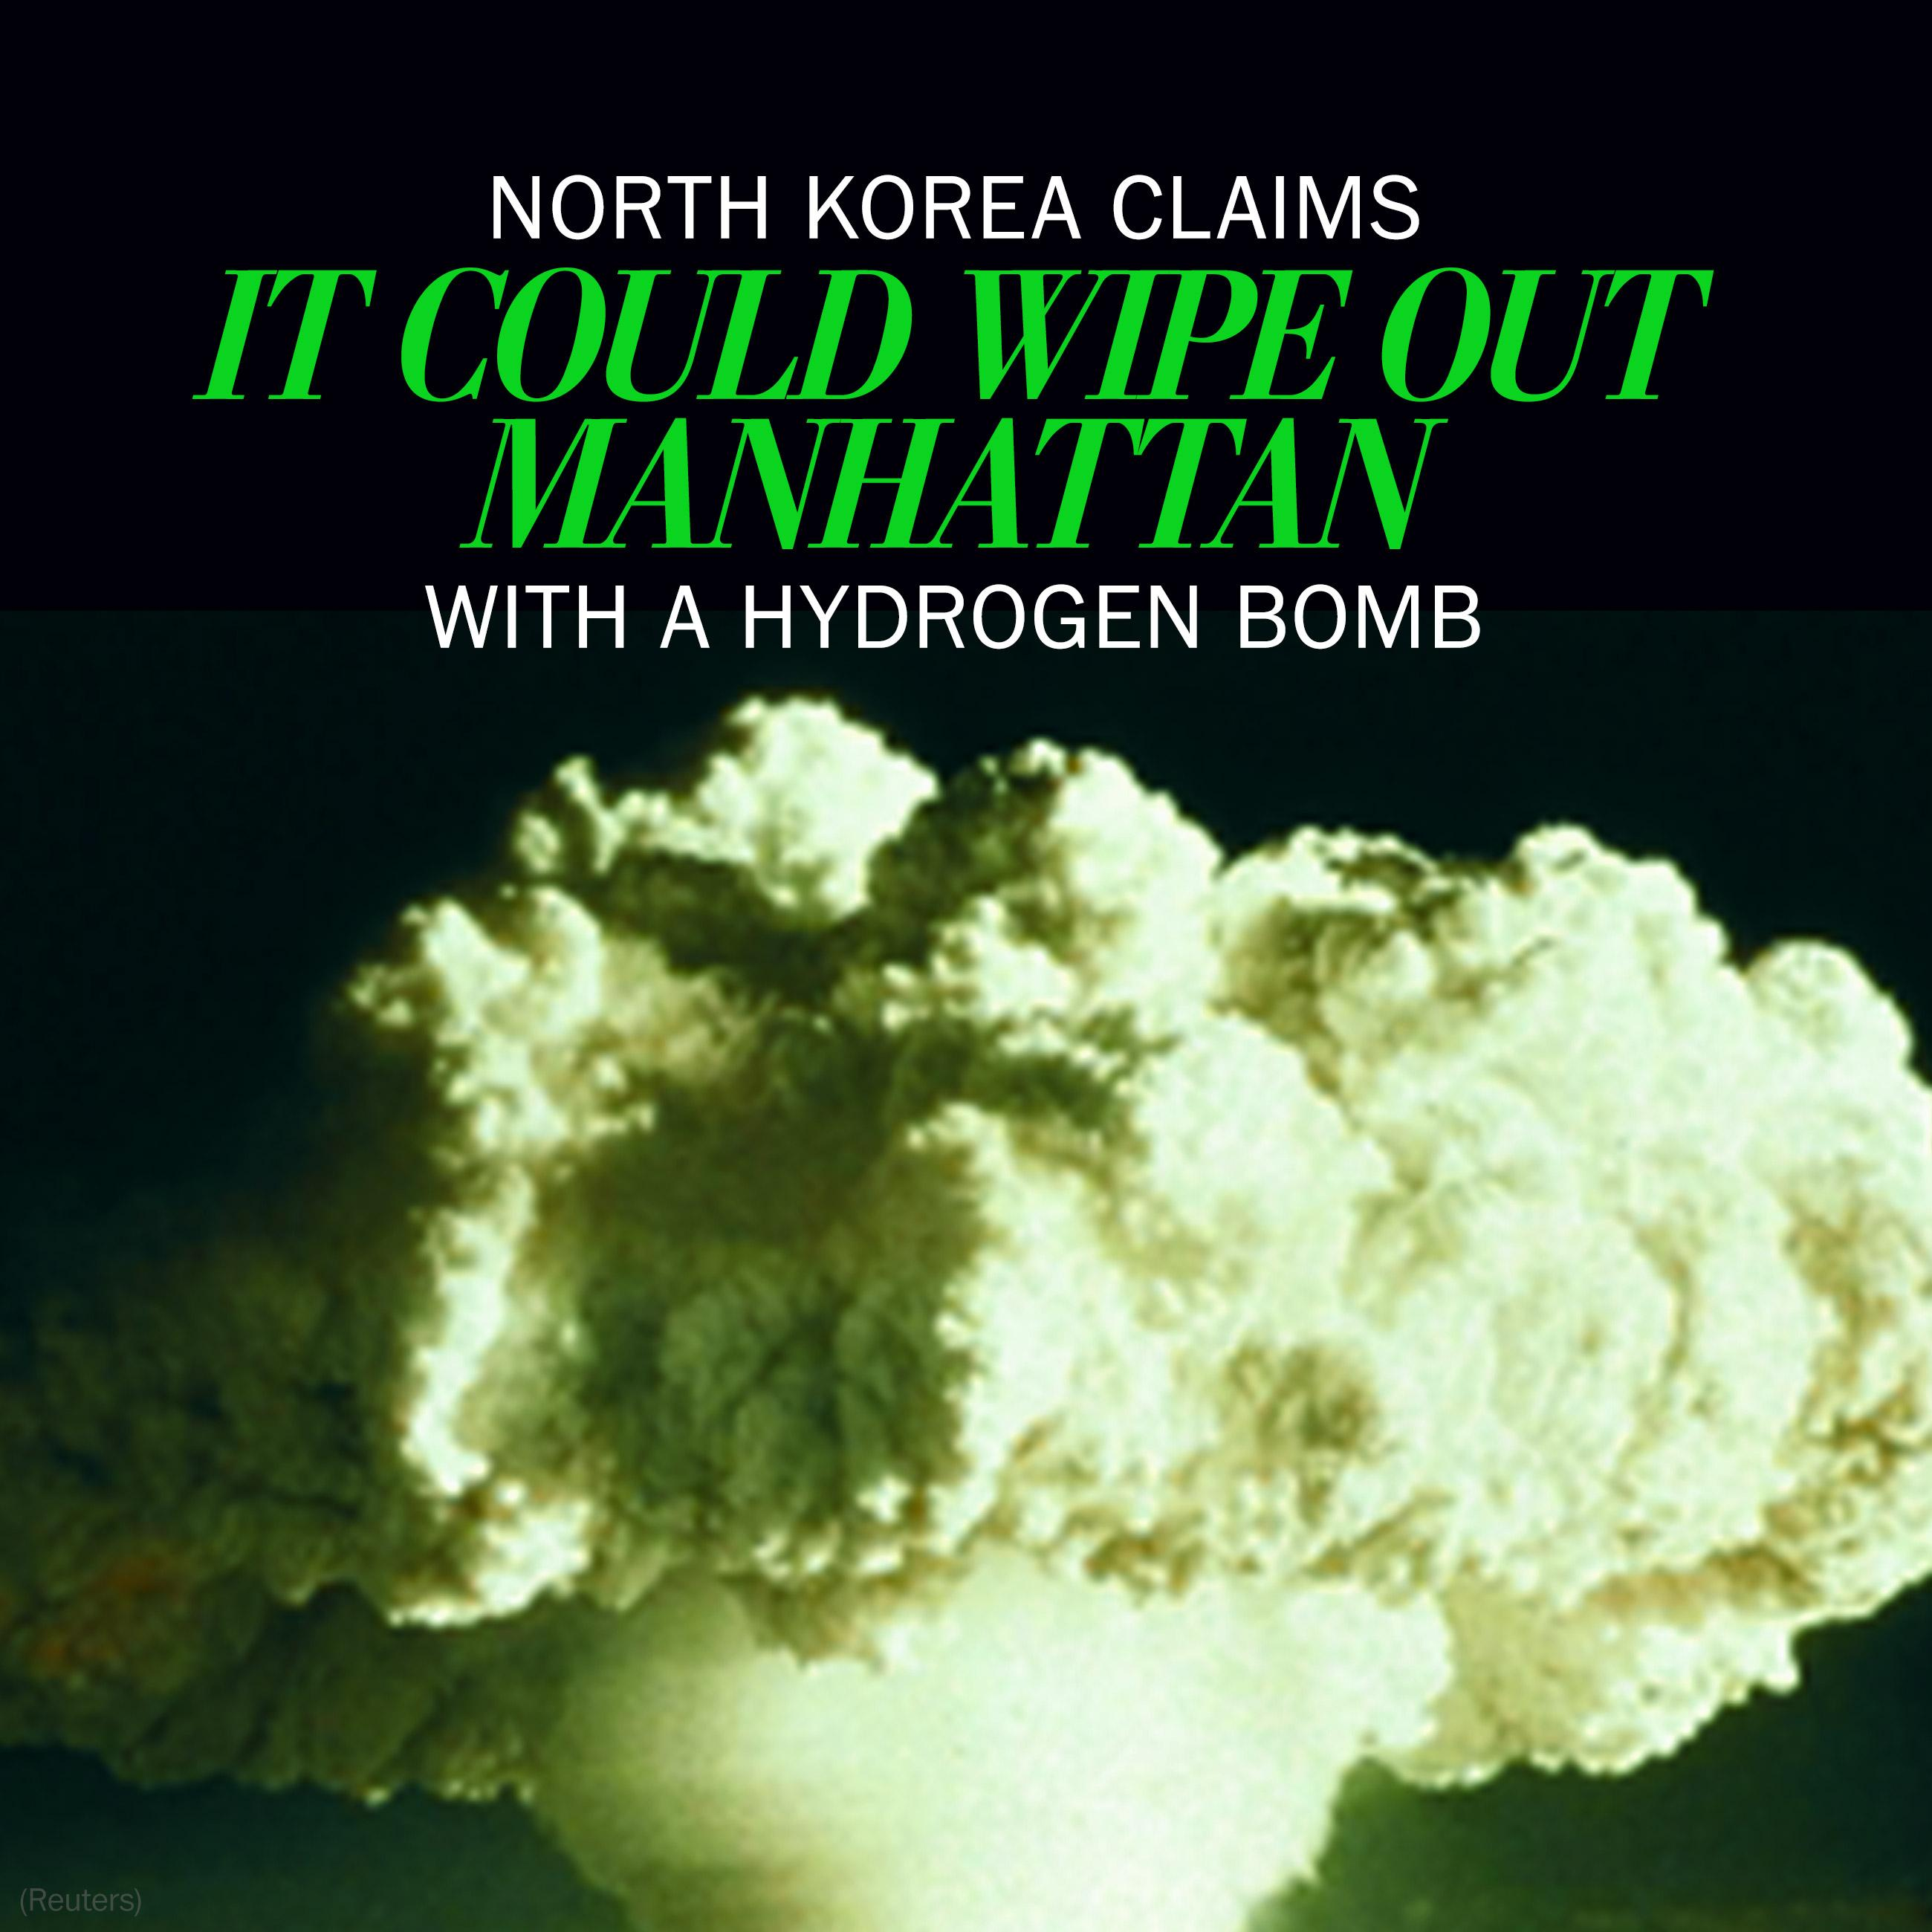 North Korea claims it could wipe out Manhattan with a hydrogen bomb